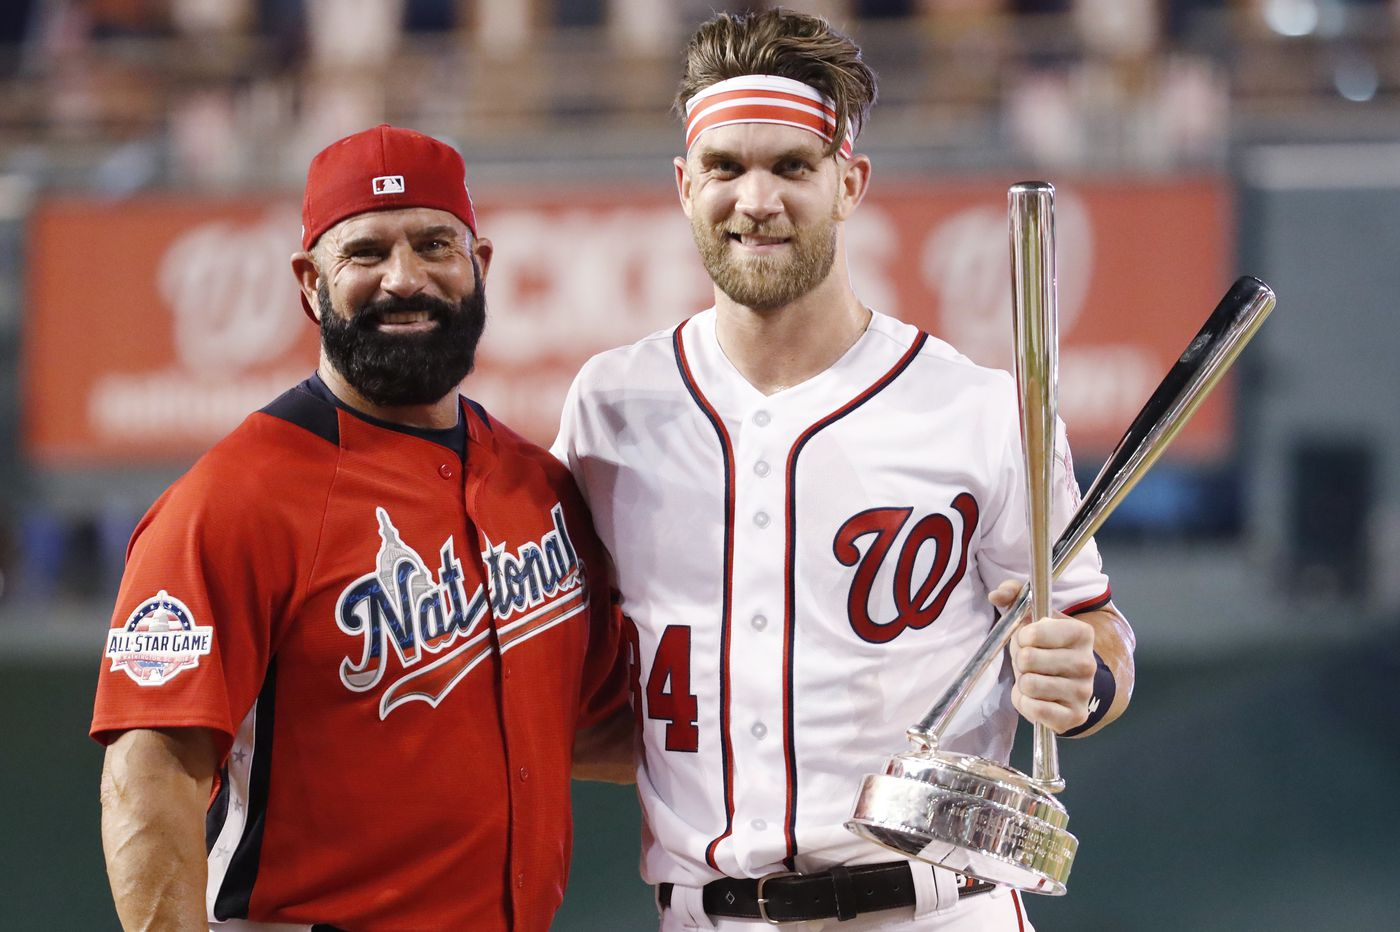 Bryce Harper's lessons on Father's Day; Tips for New Yorkers in Philly | Morning Newsletter